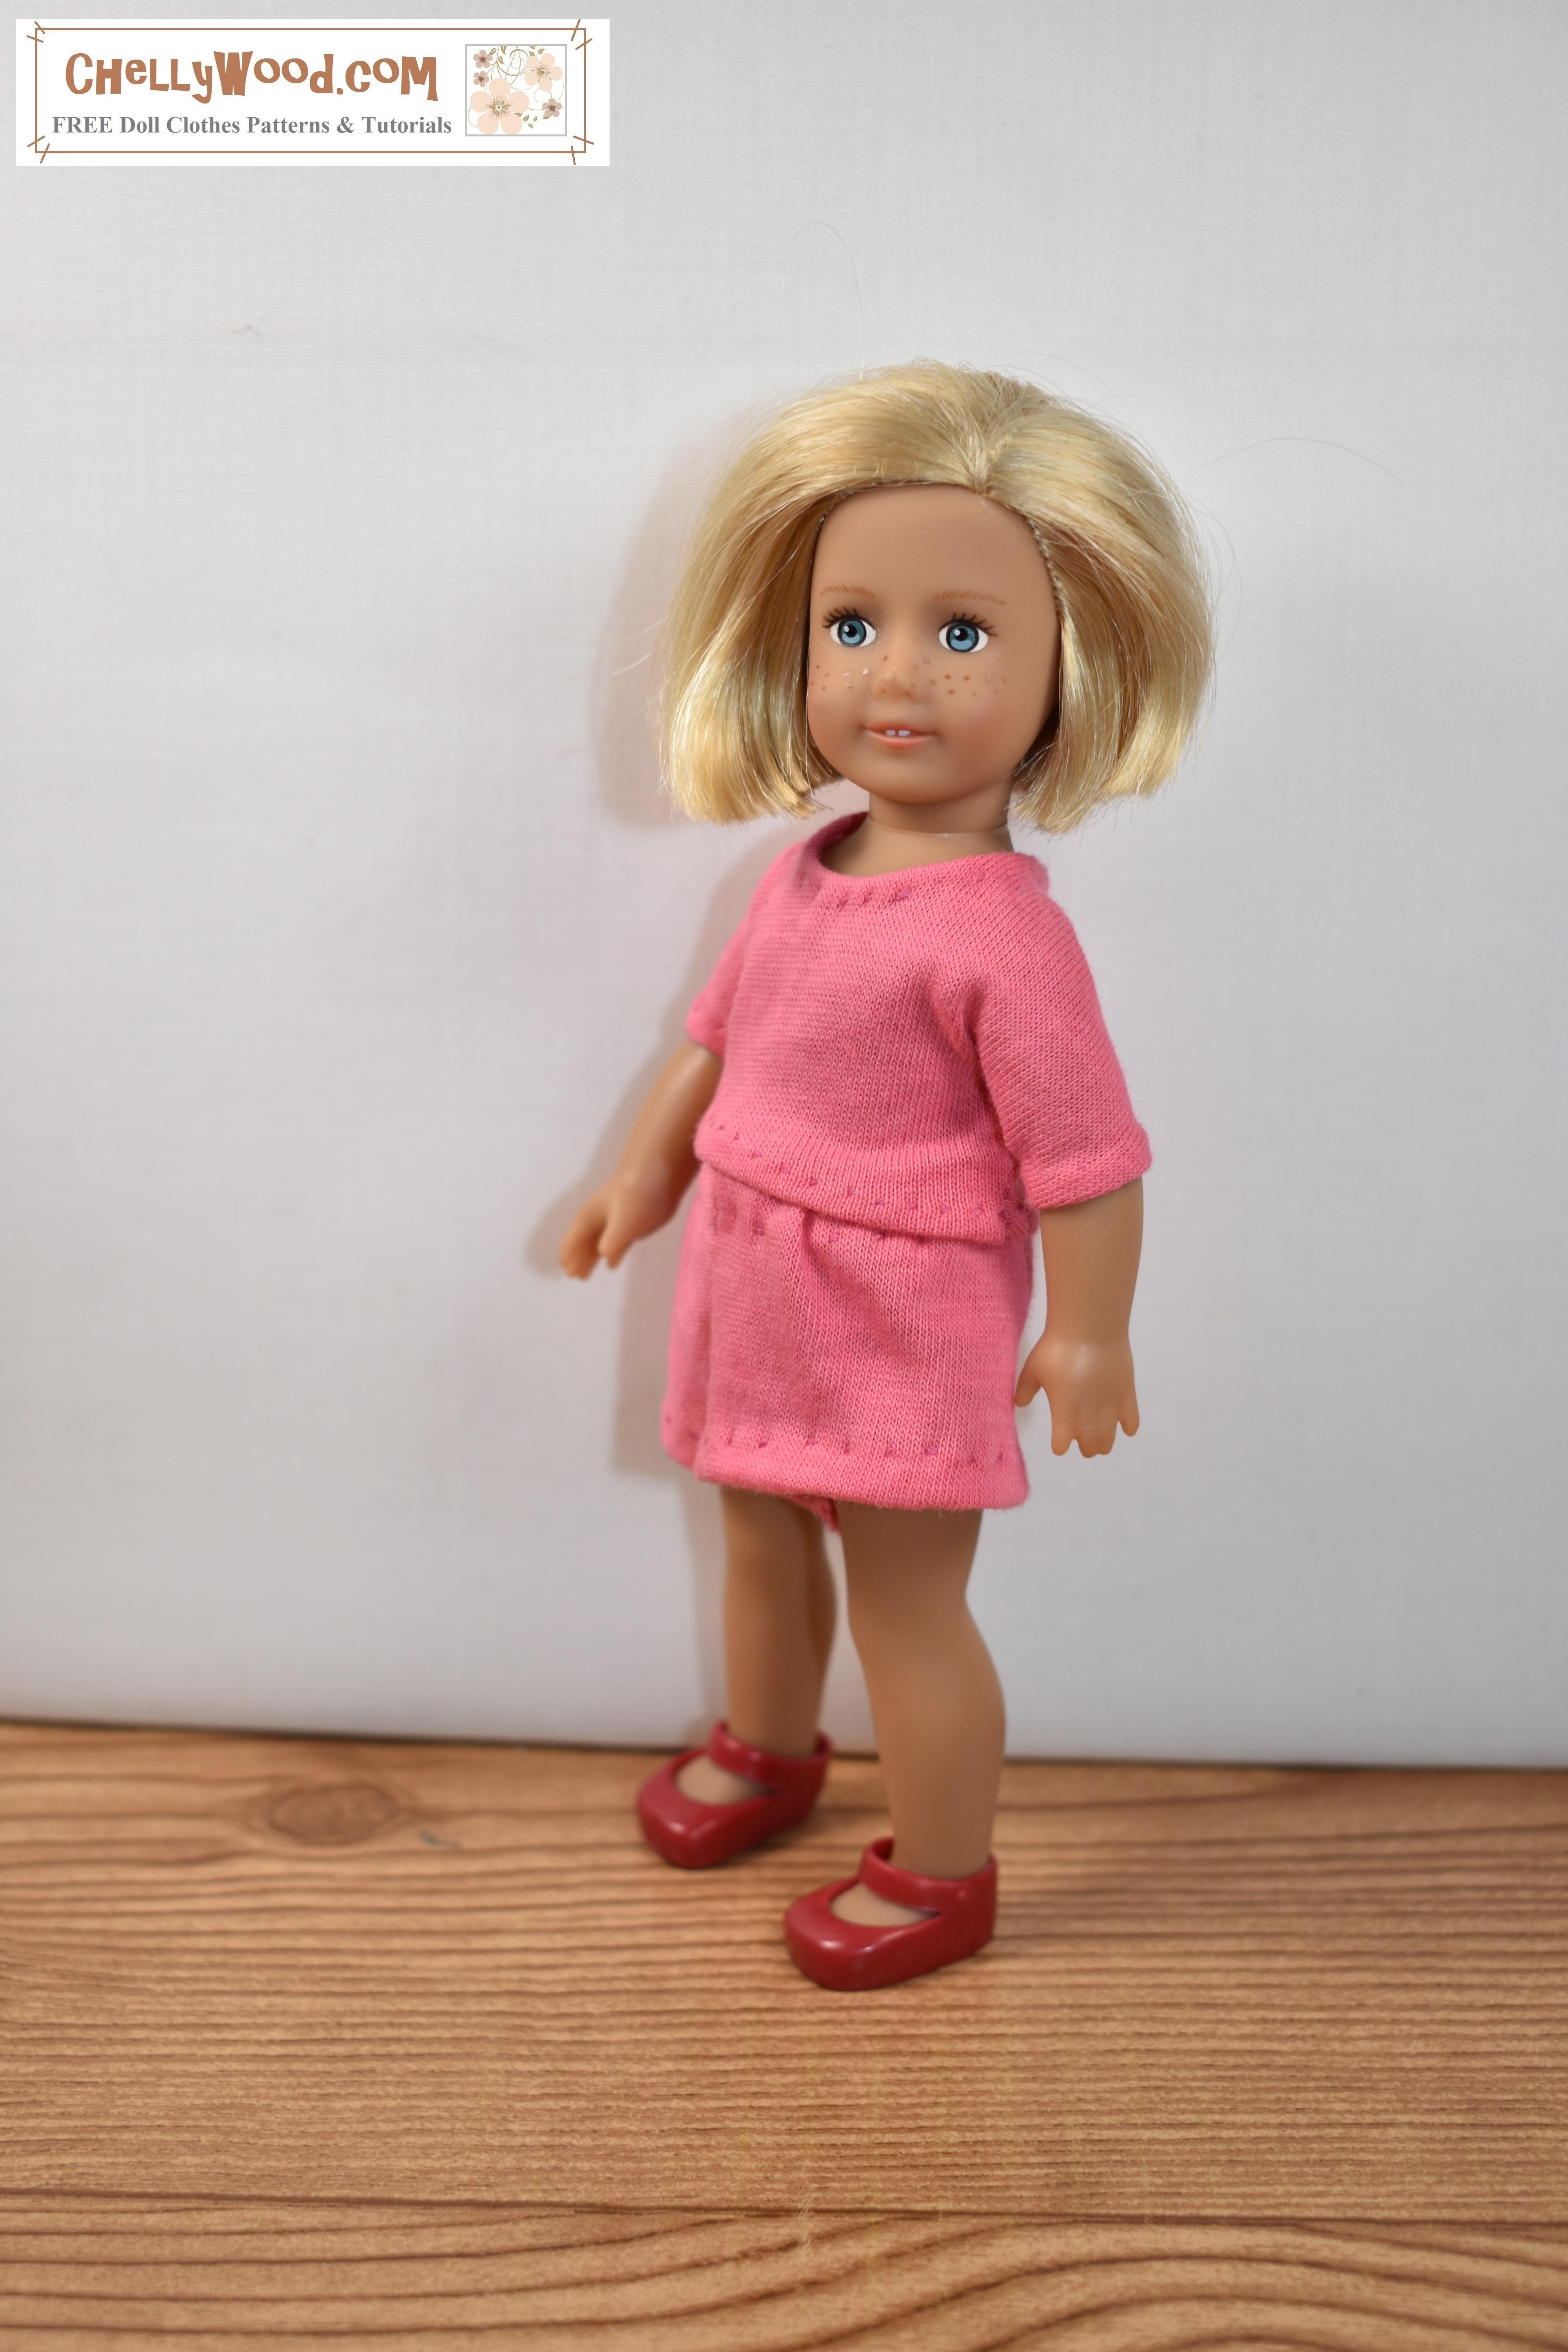 The image shows a 6-inch American Girl doll wearing handmade doll clothes that include a pair of elastic-waist jersey-fabric shorts and a matching T-shirt in salmon-colored jersey fabric. Click here for the free printable PDF sewing patterns and free tutorials to make this outfit.